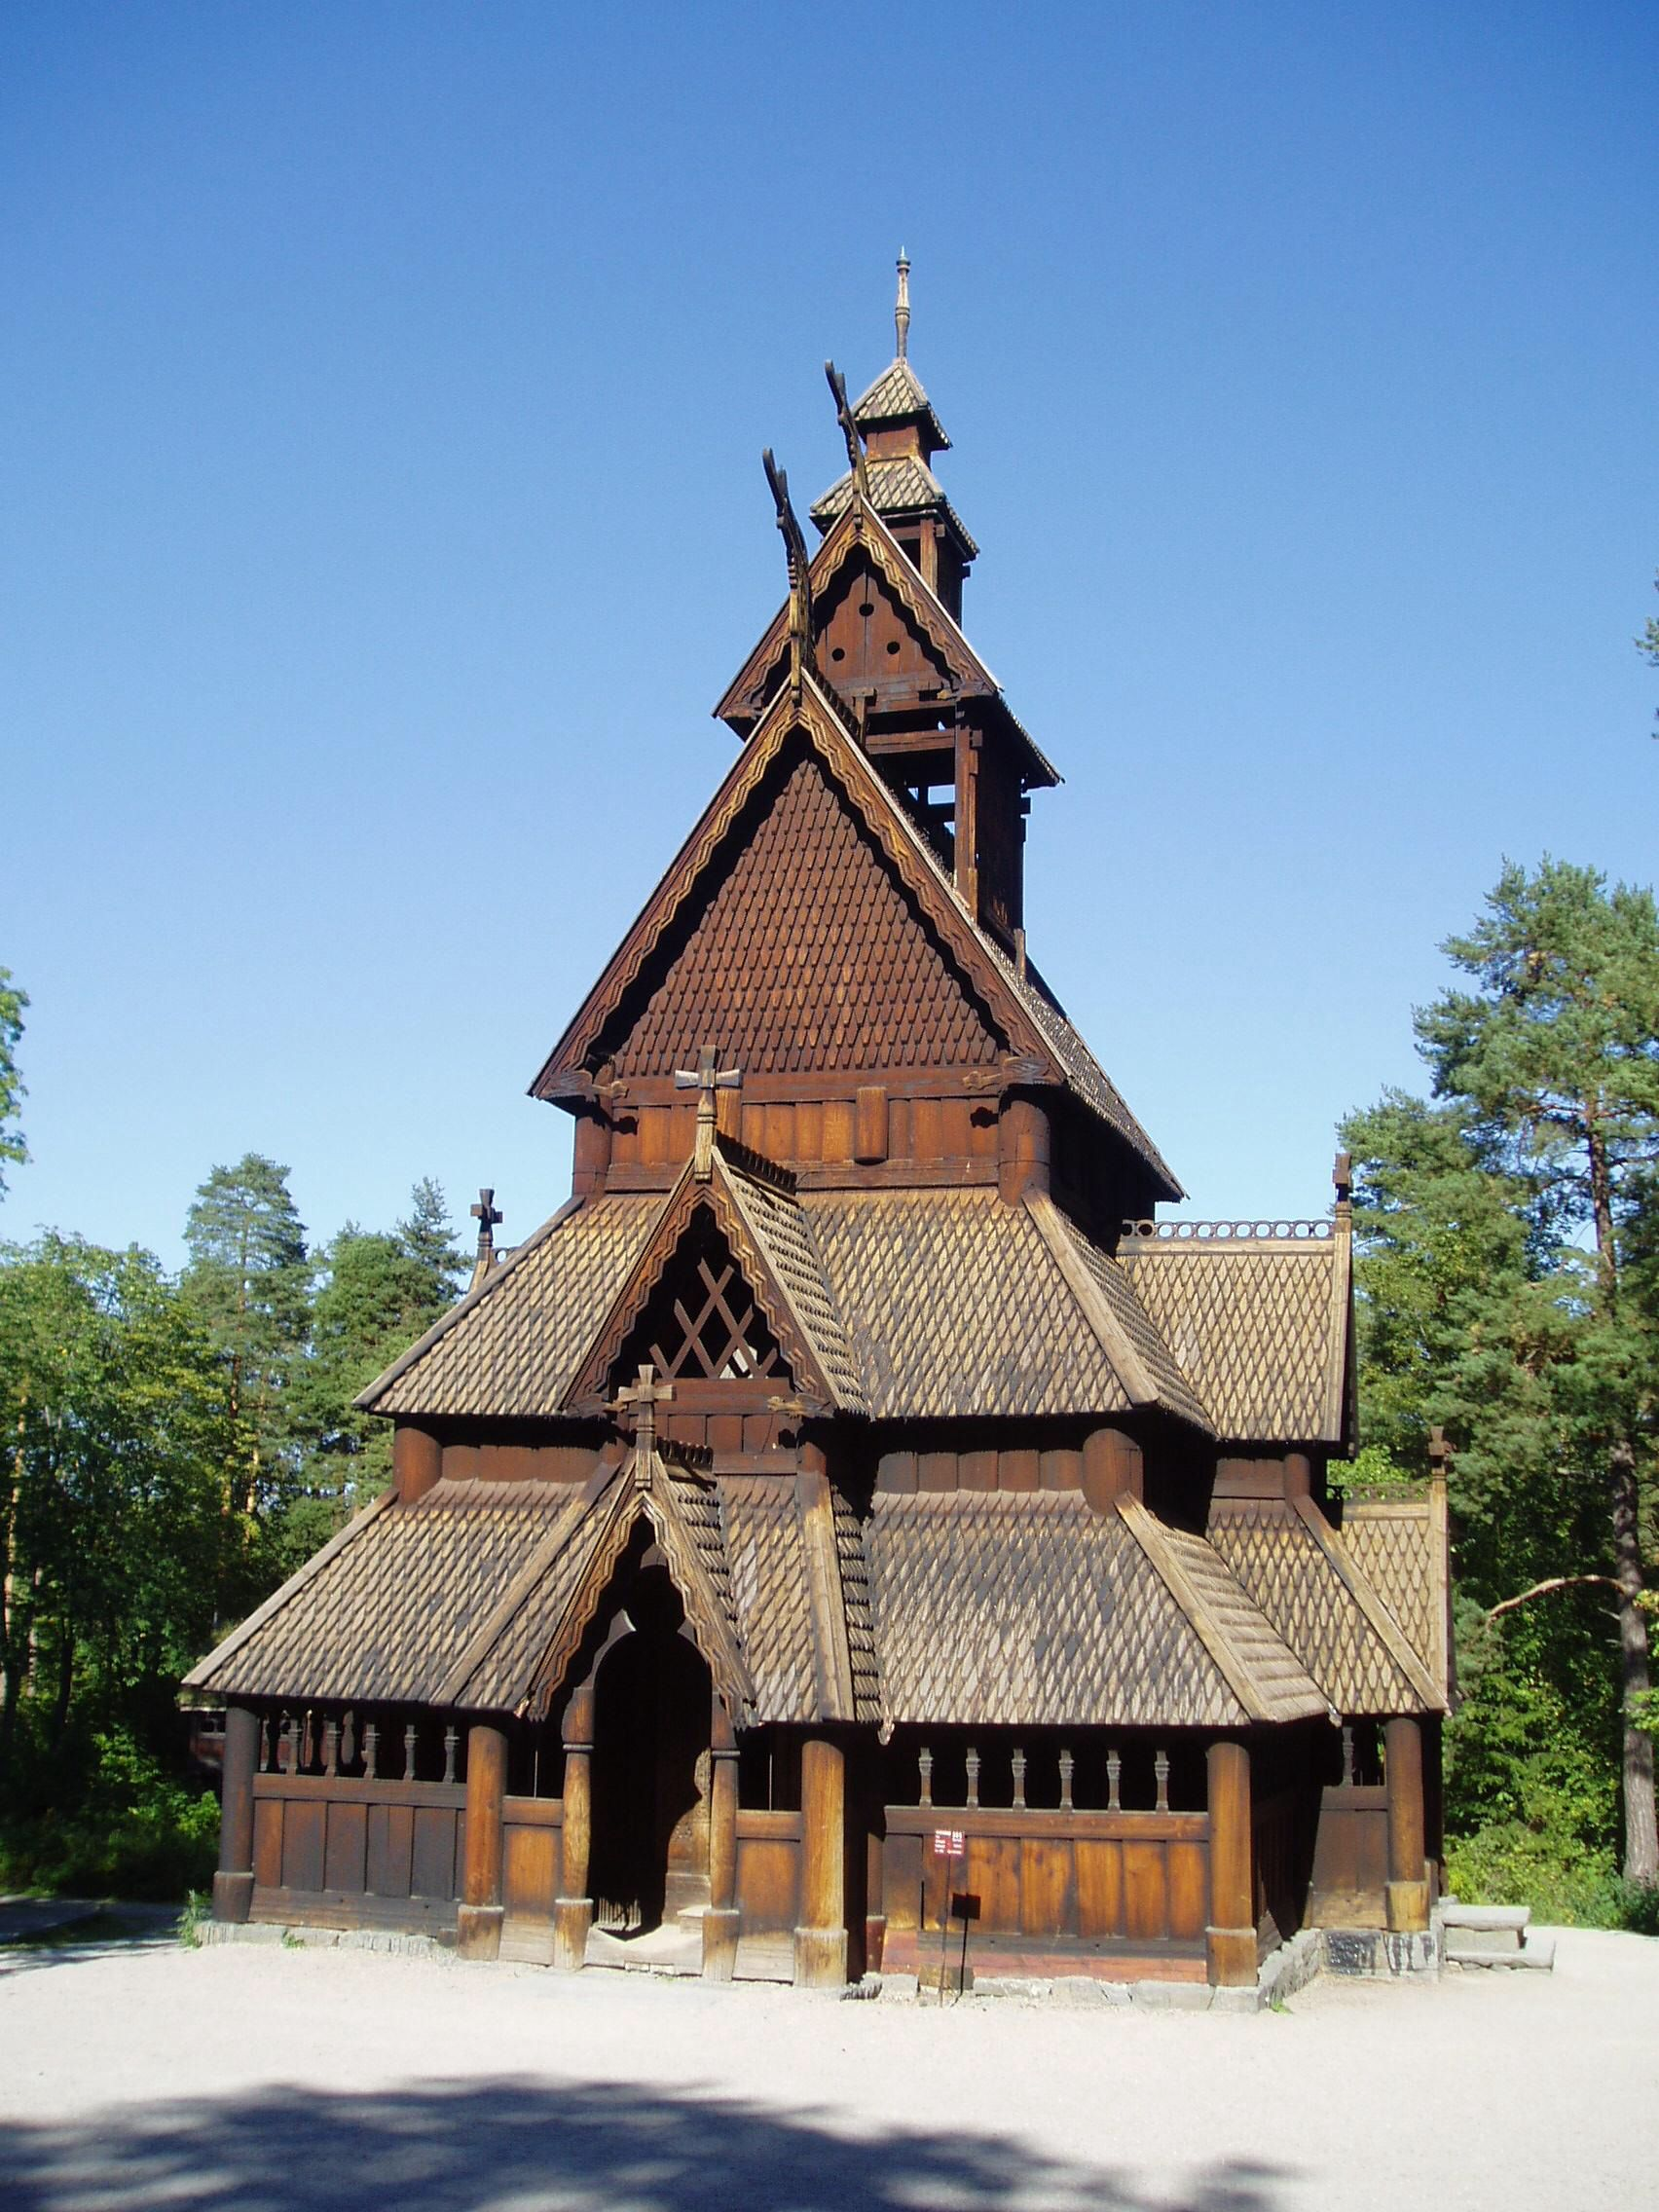 Image from https://upload.wikimedia.org/wikipedia/commons/8/88/Gol_Stave_Church.jpg.